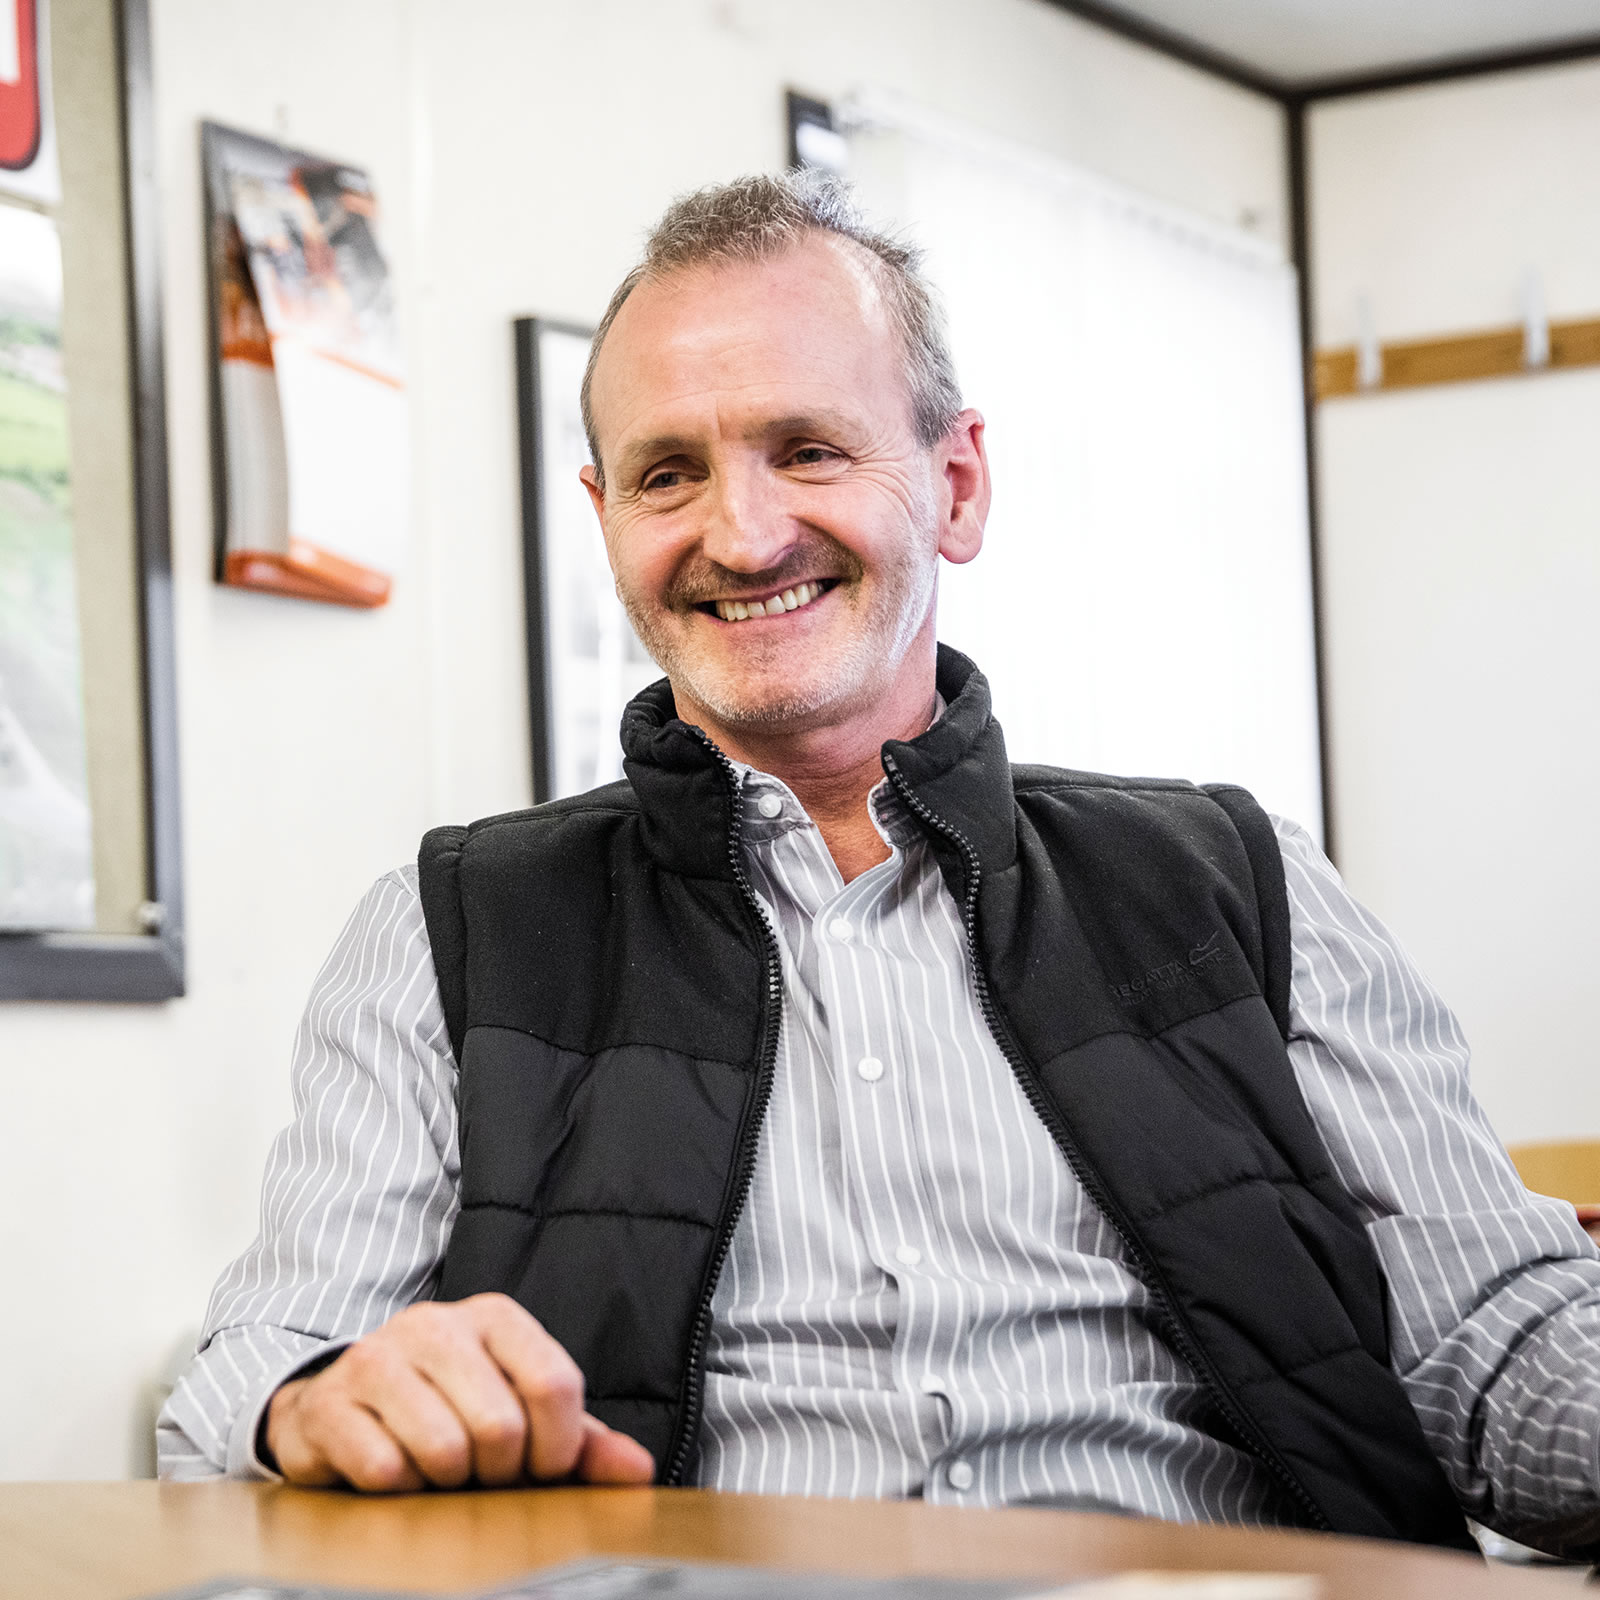 Managing Director of MJ Hickey, Anthony Hickey